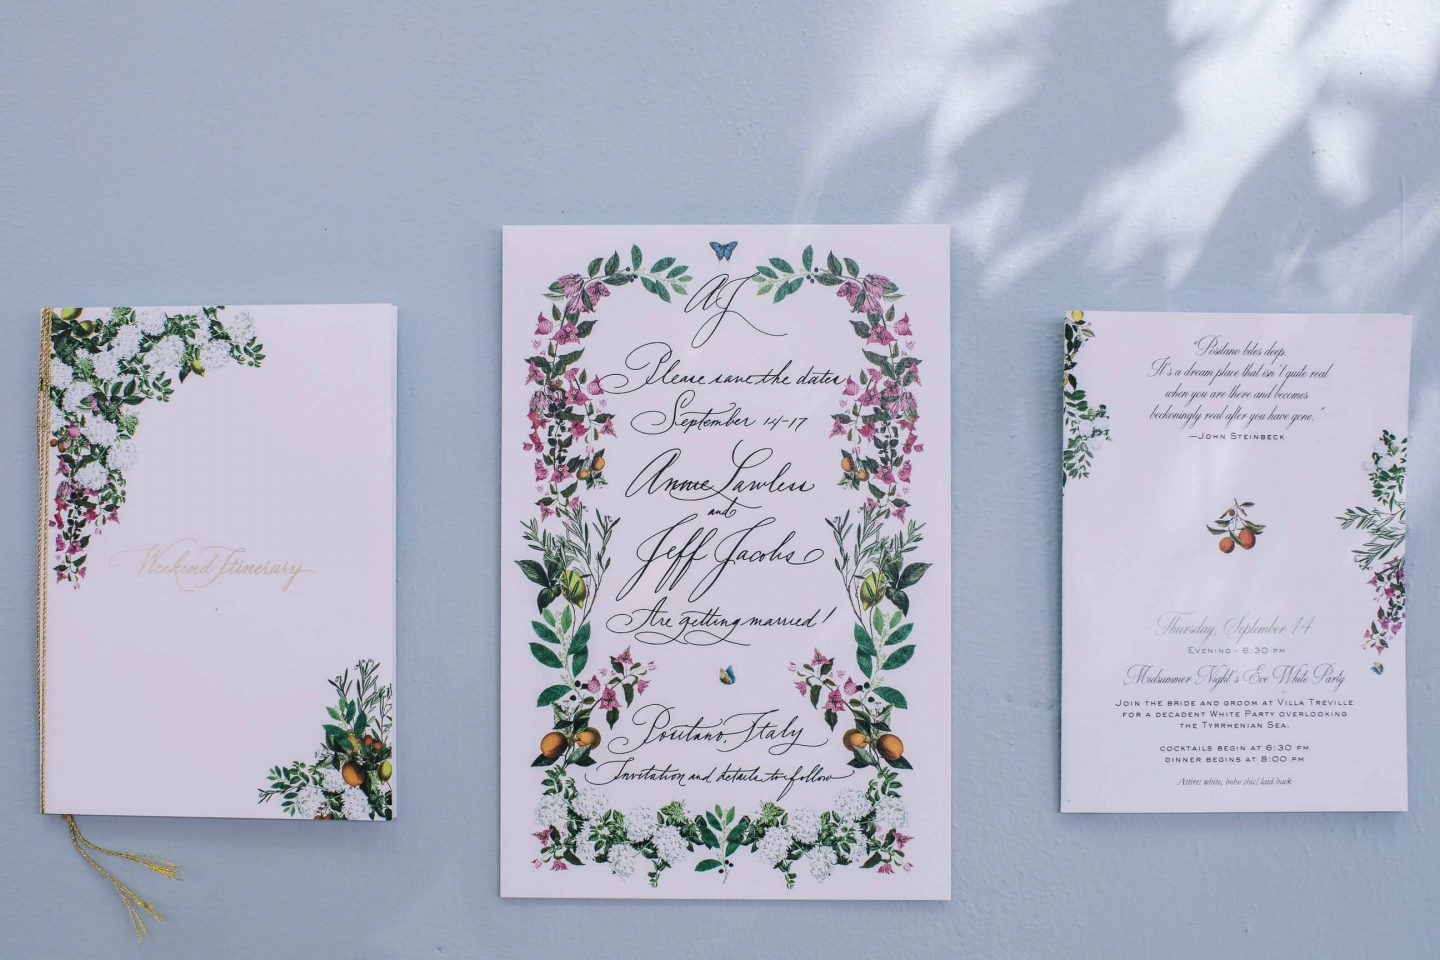 Wedding stationery at this Positano wedding weekend in Villa Tre Ville | Photo by Gianni di Natale